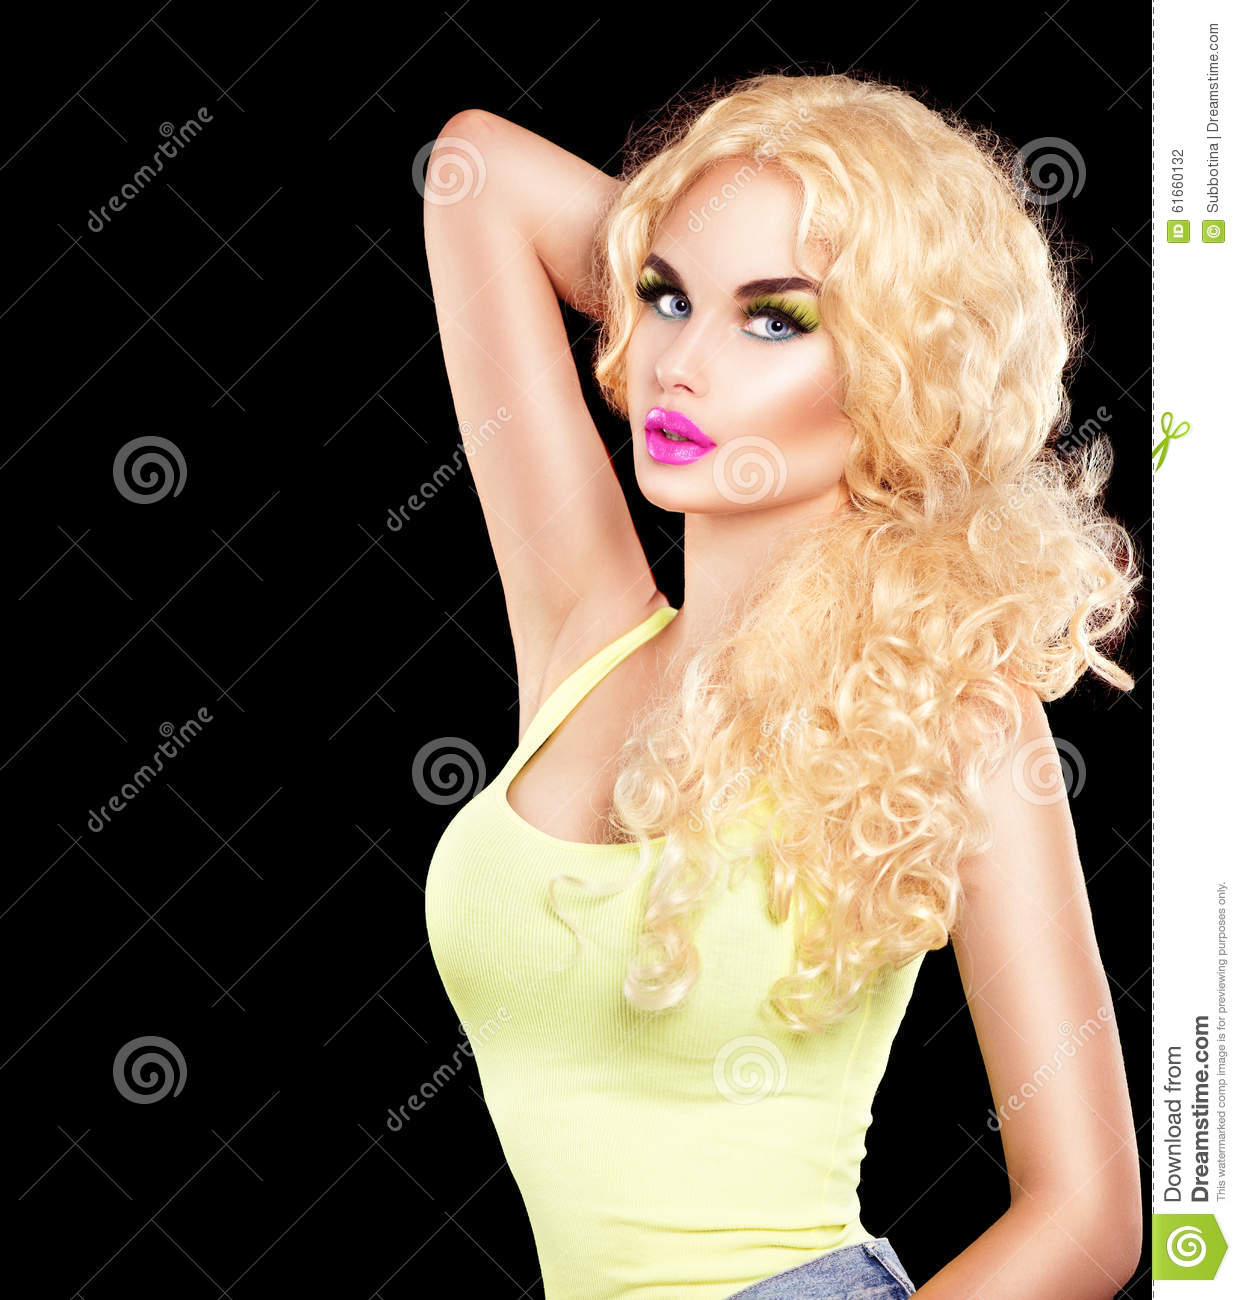 Beauty model girl with long curly hair